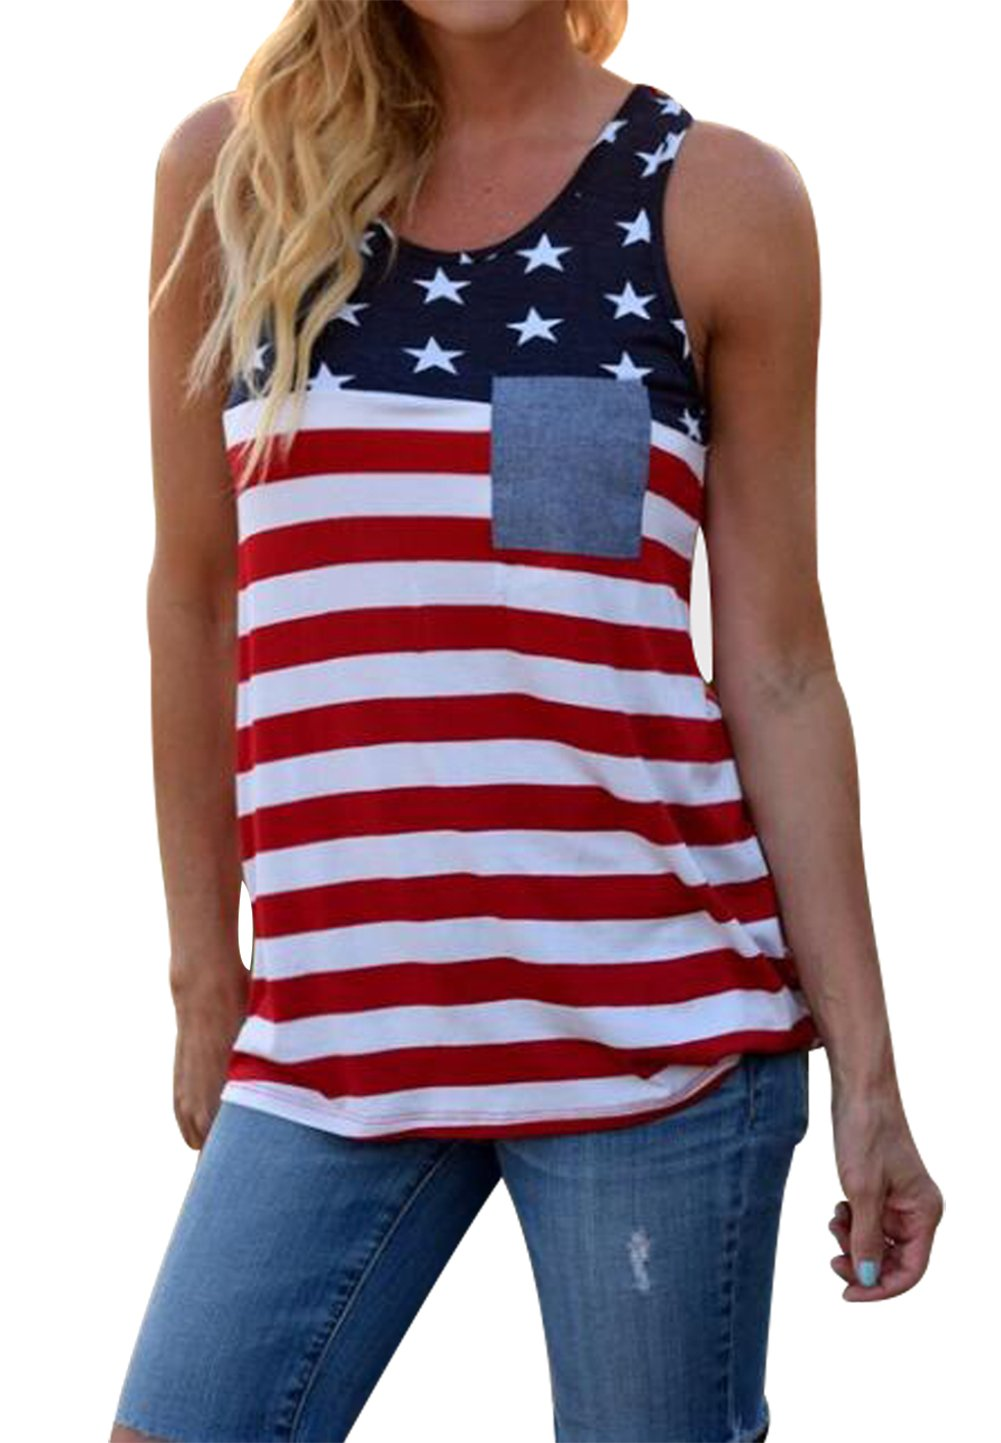 UNIQUEONE Womens American Flag Tank Patriotic Shirt Sleeveless Tunic 4th of July Flag Blouse Tops Size S (Stripe)